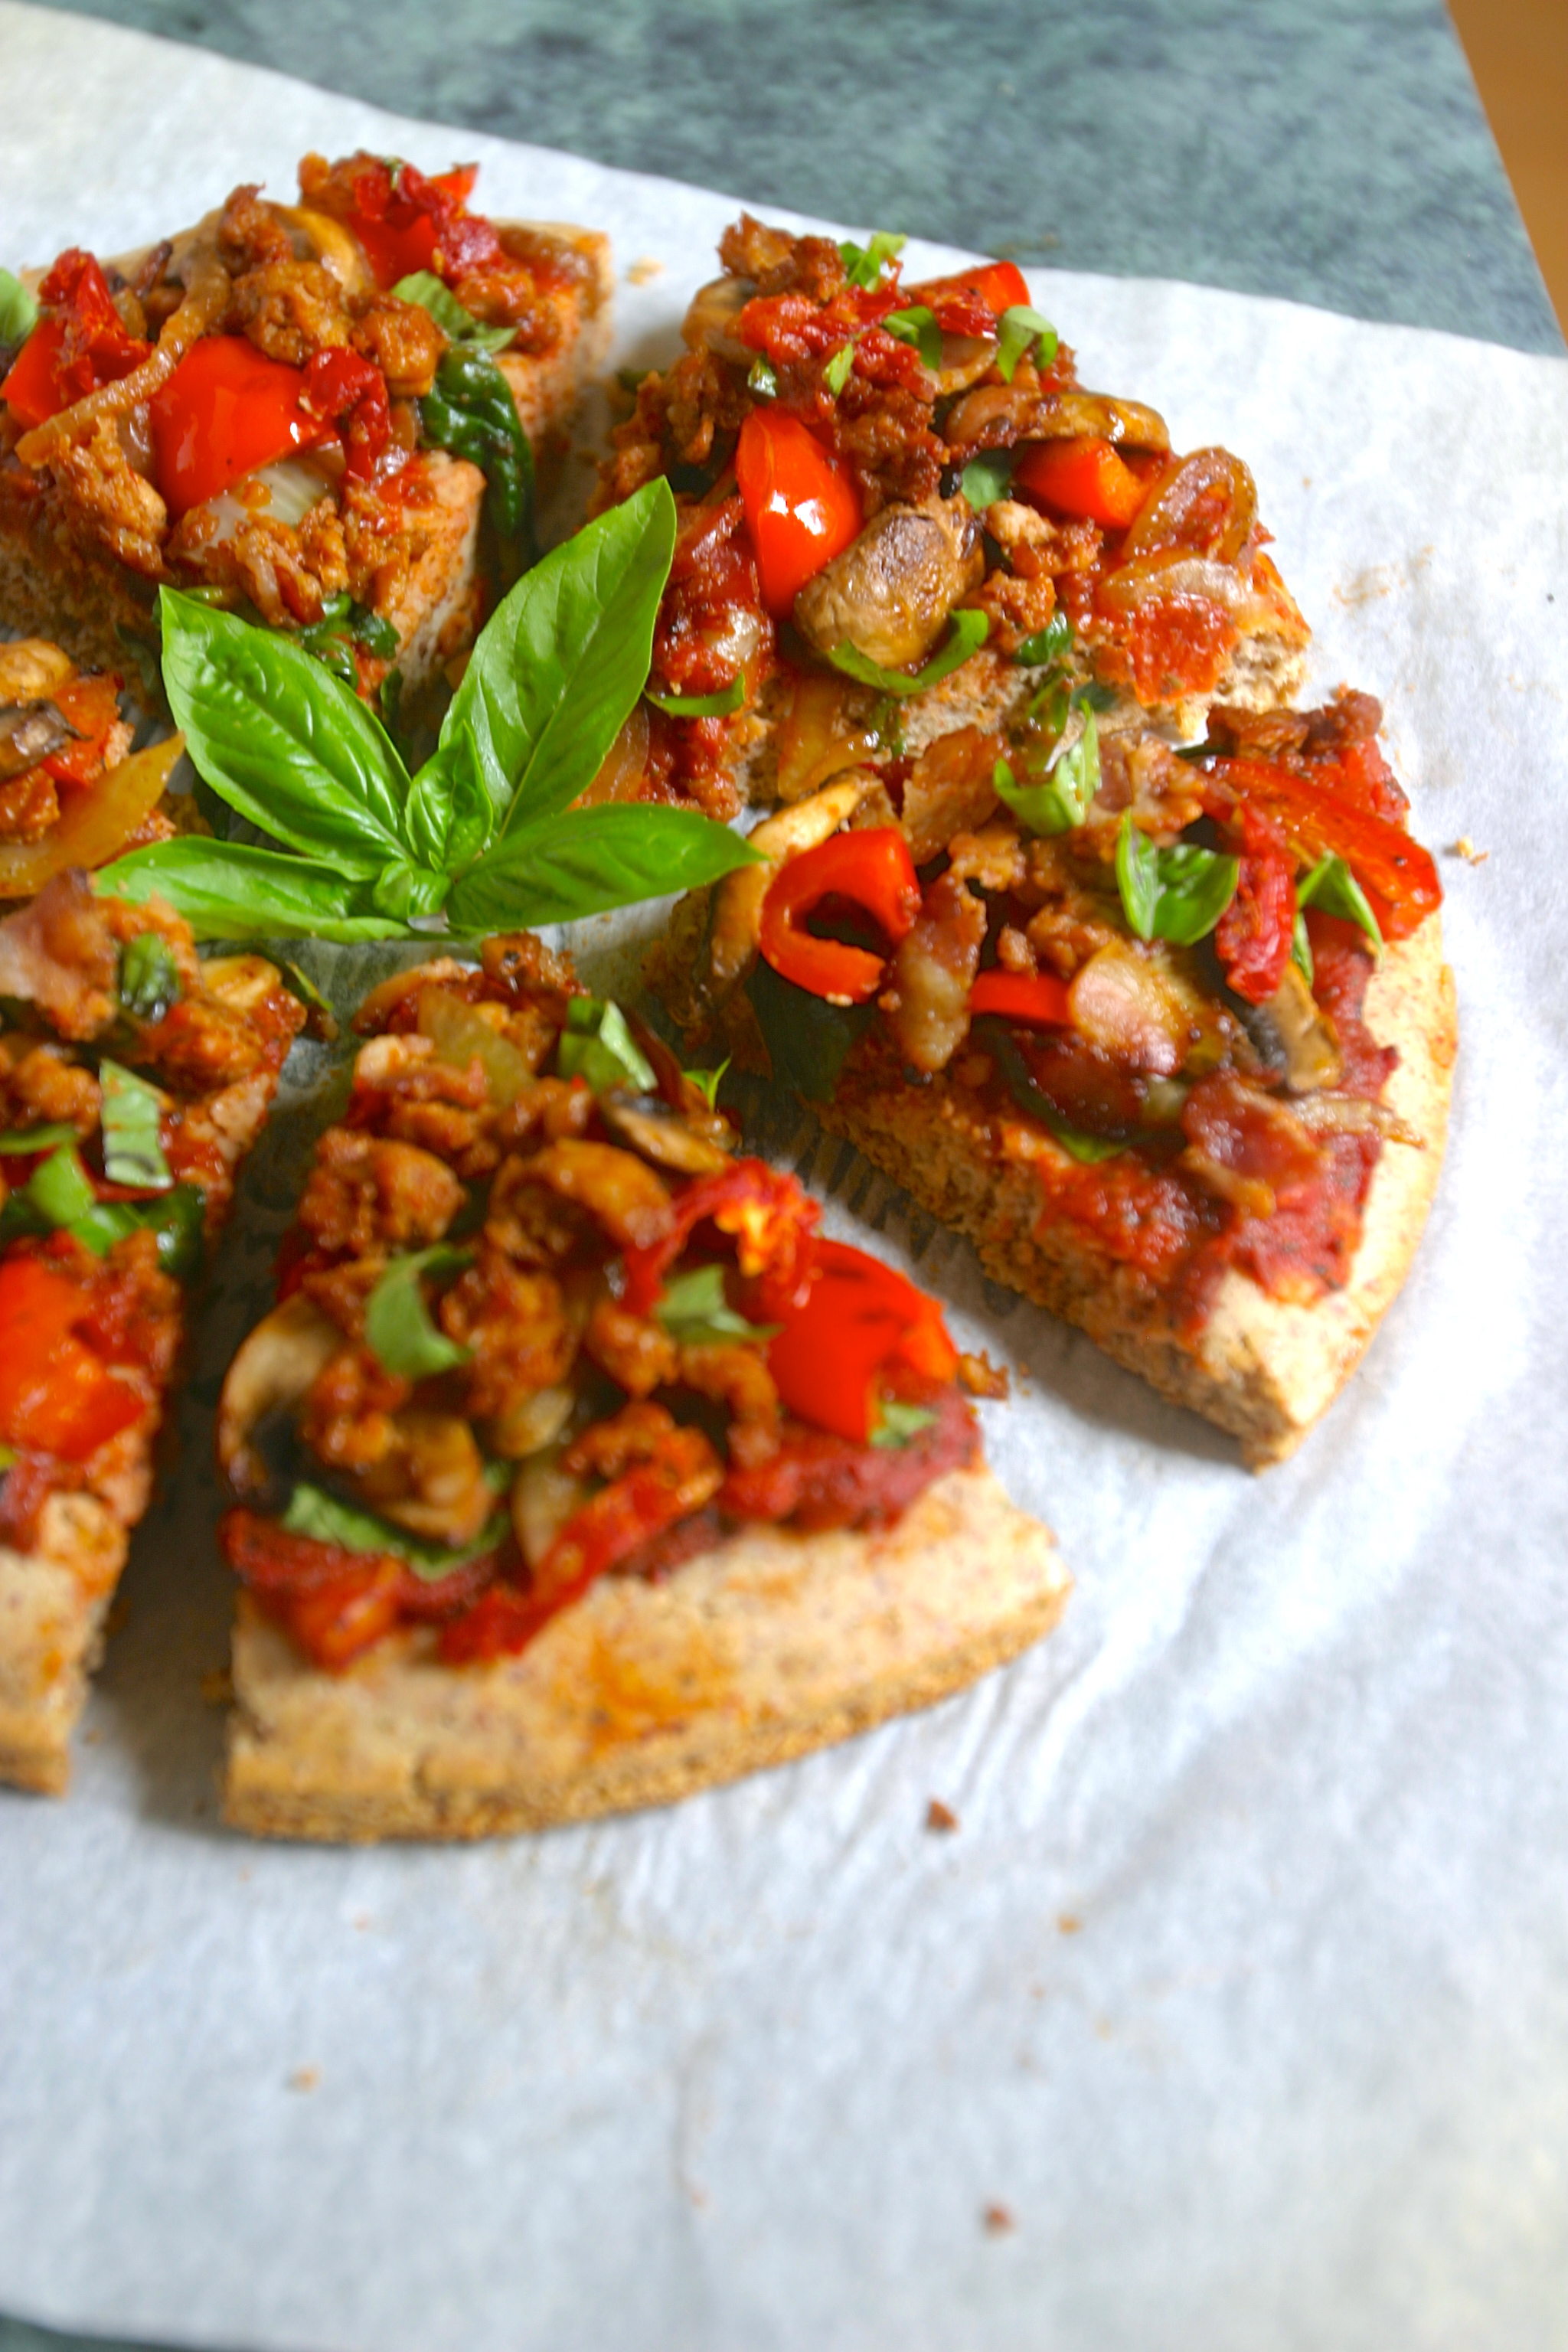 ultimate paleo pizza (grain free, gluten free, 21 DSD)